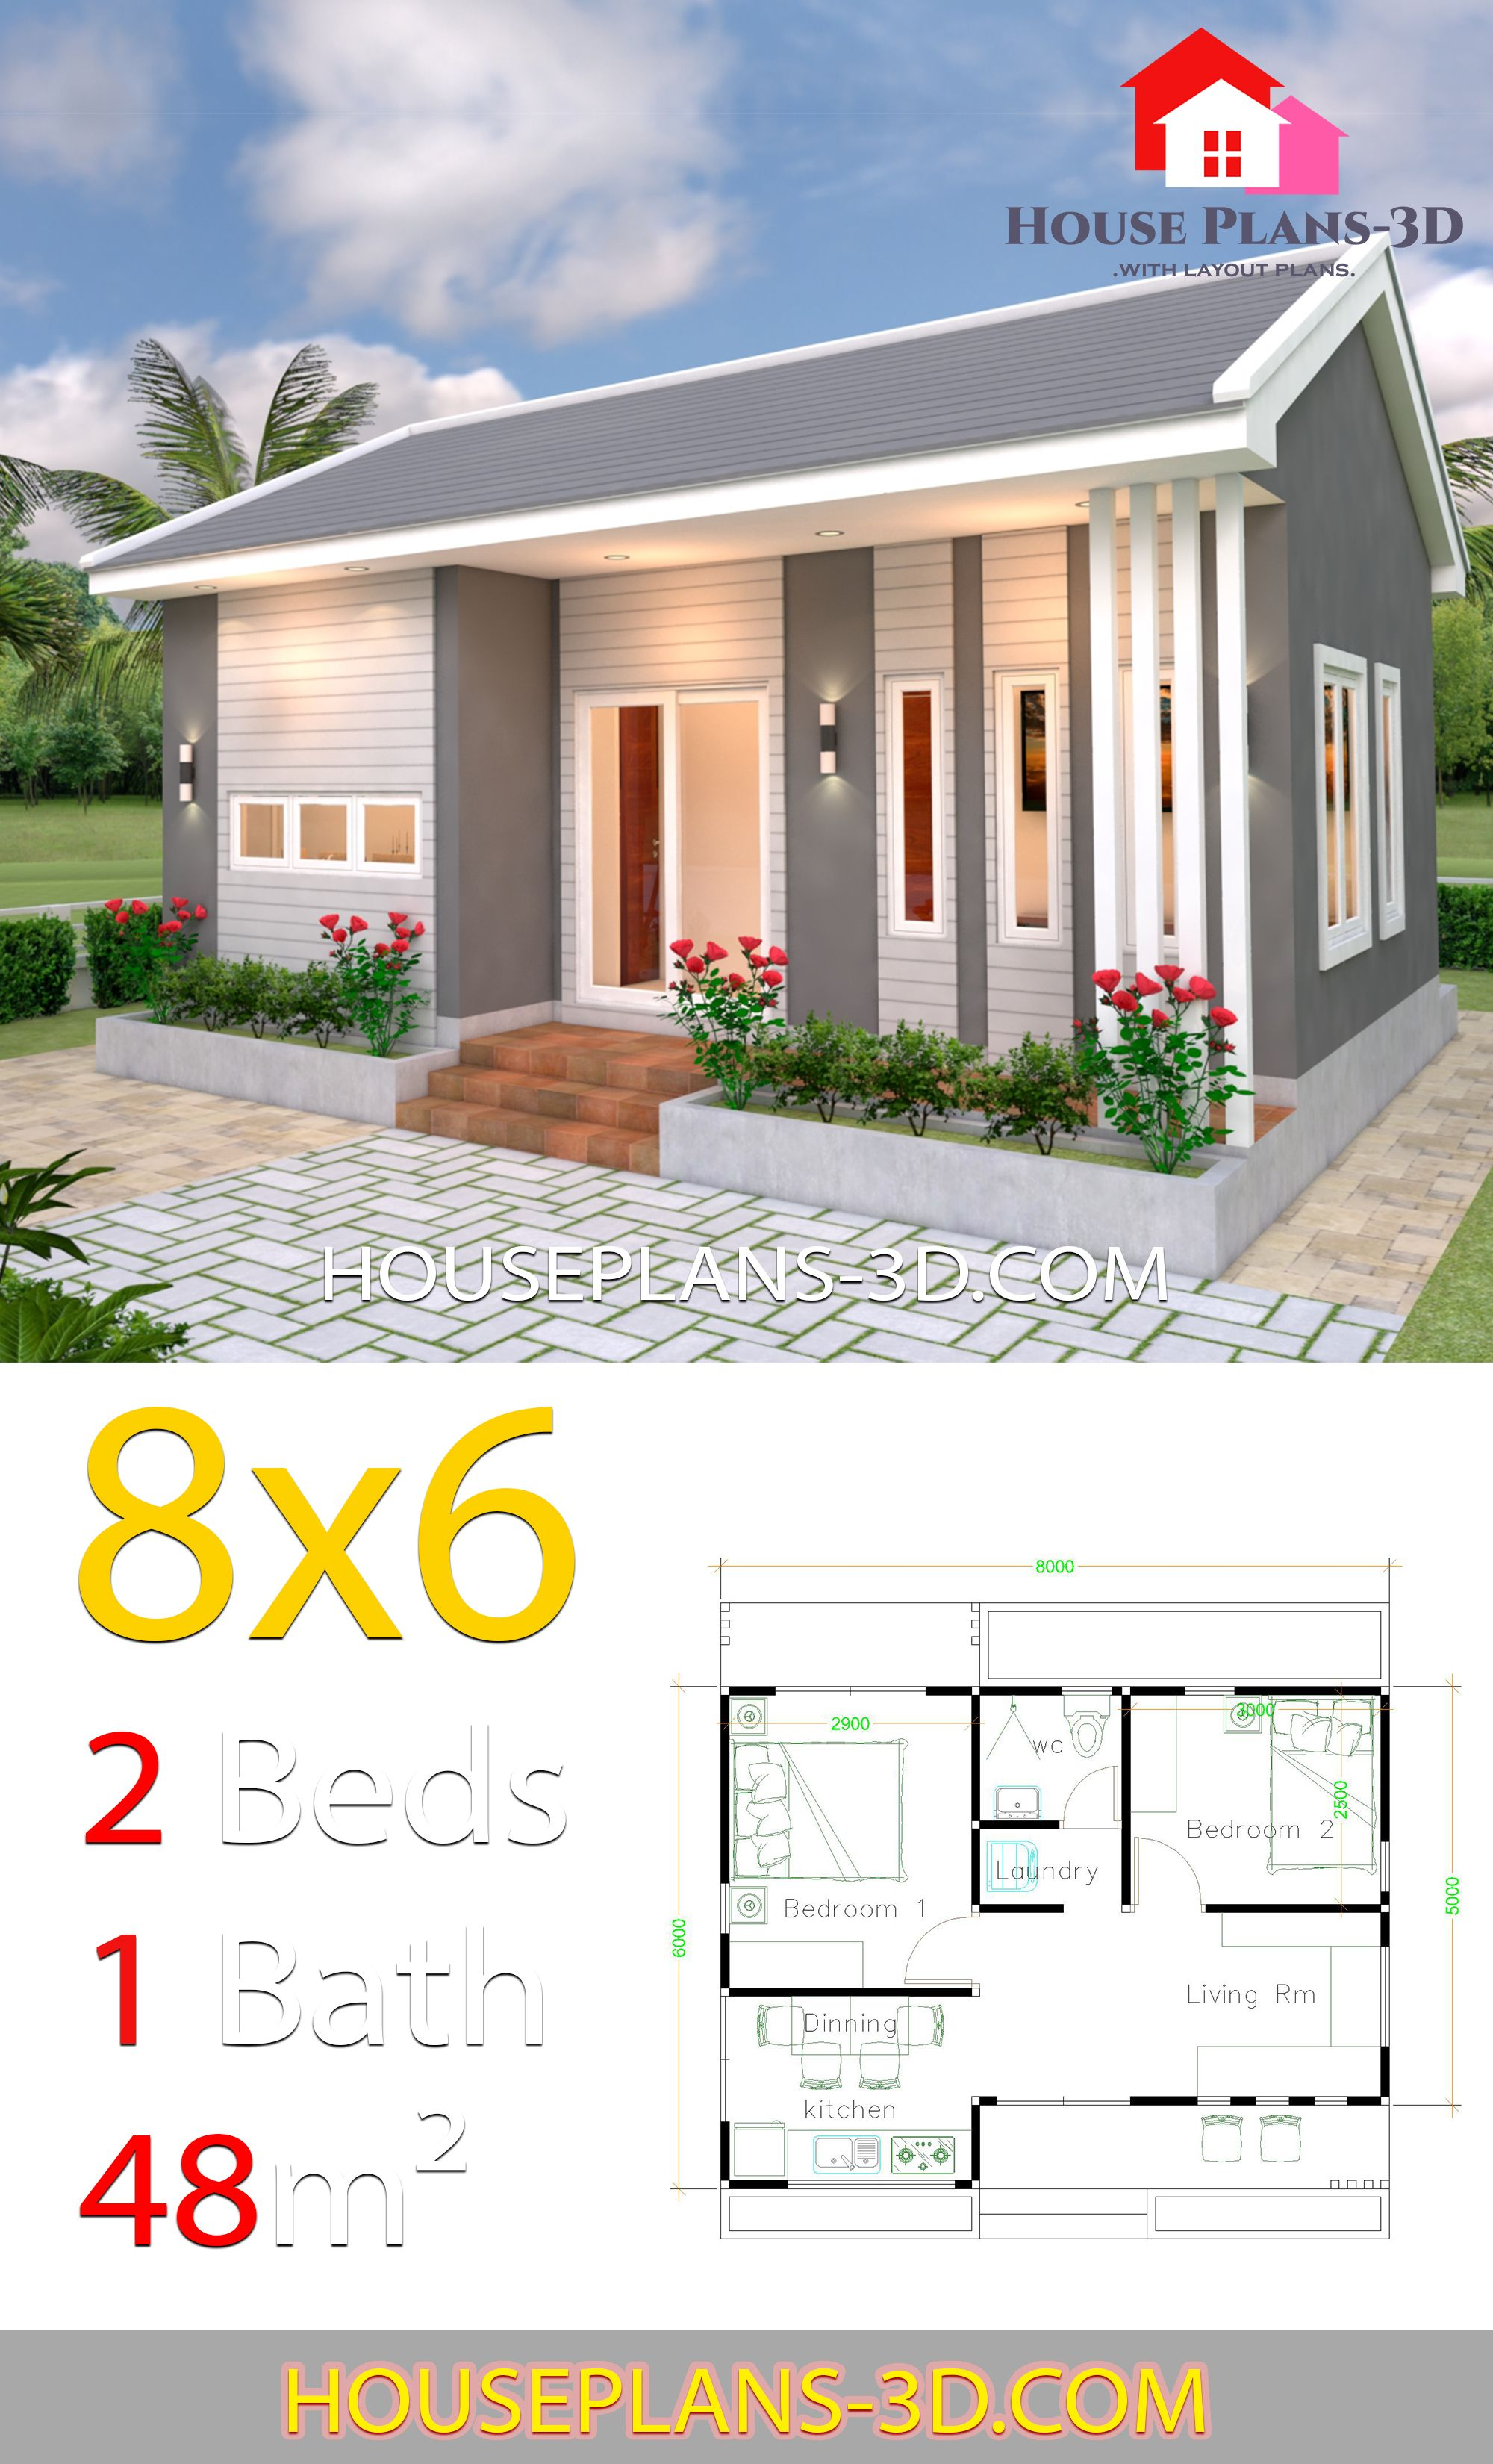 House Design Plans 8x6 With 2 Bedrooms House Plans 3d In 2020 House Design Bedroom House Plans 2 Bedroom House Plans